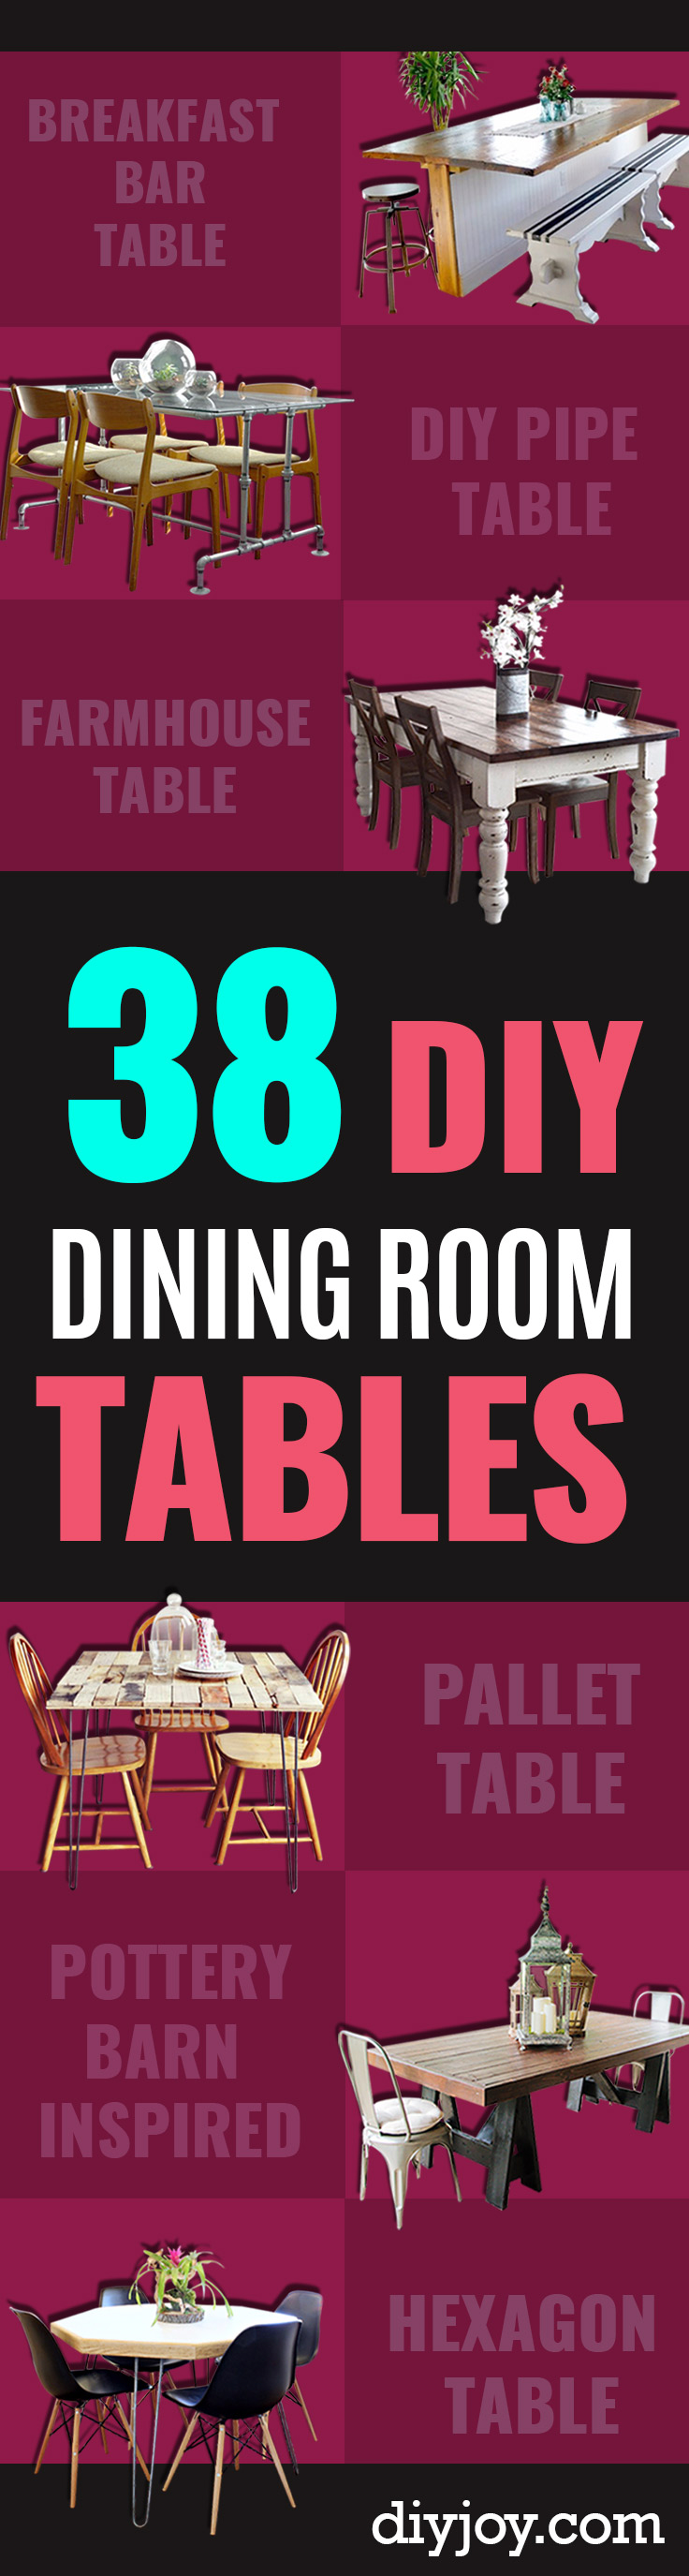 diy dining room table projects creative do it yourself tables and ideas you can make - Making Dining Room Table